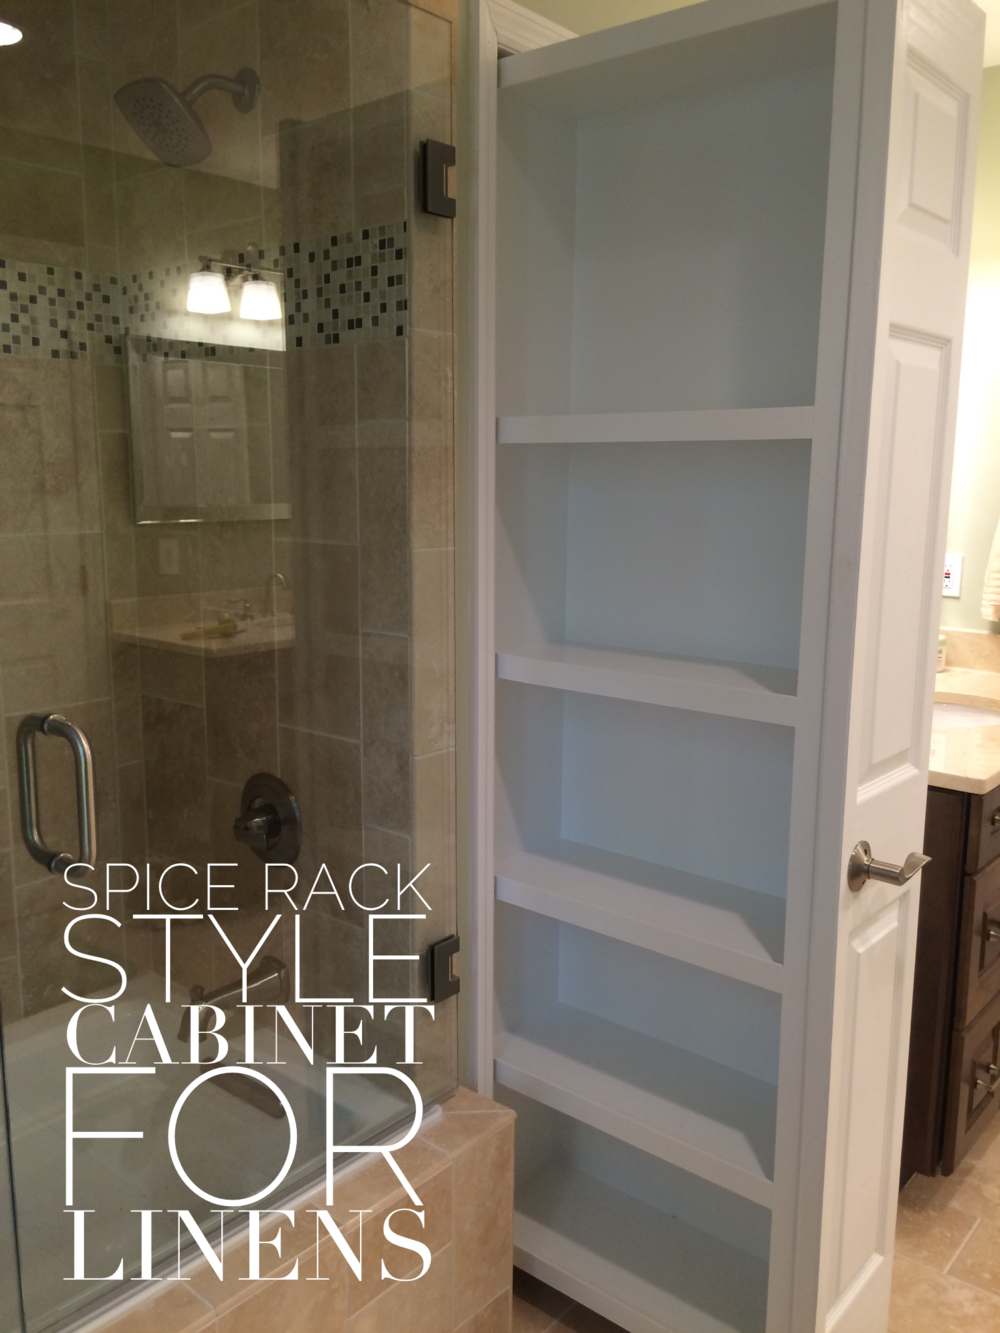 Spice Rack style cabinet for Linens in a bathroom